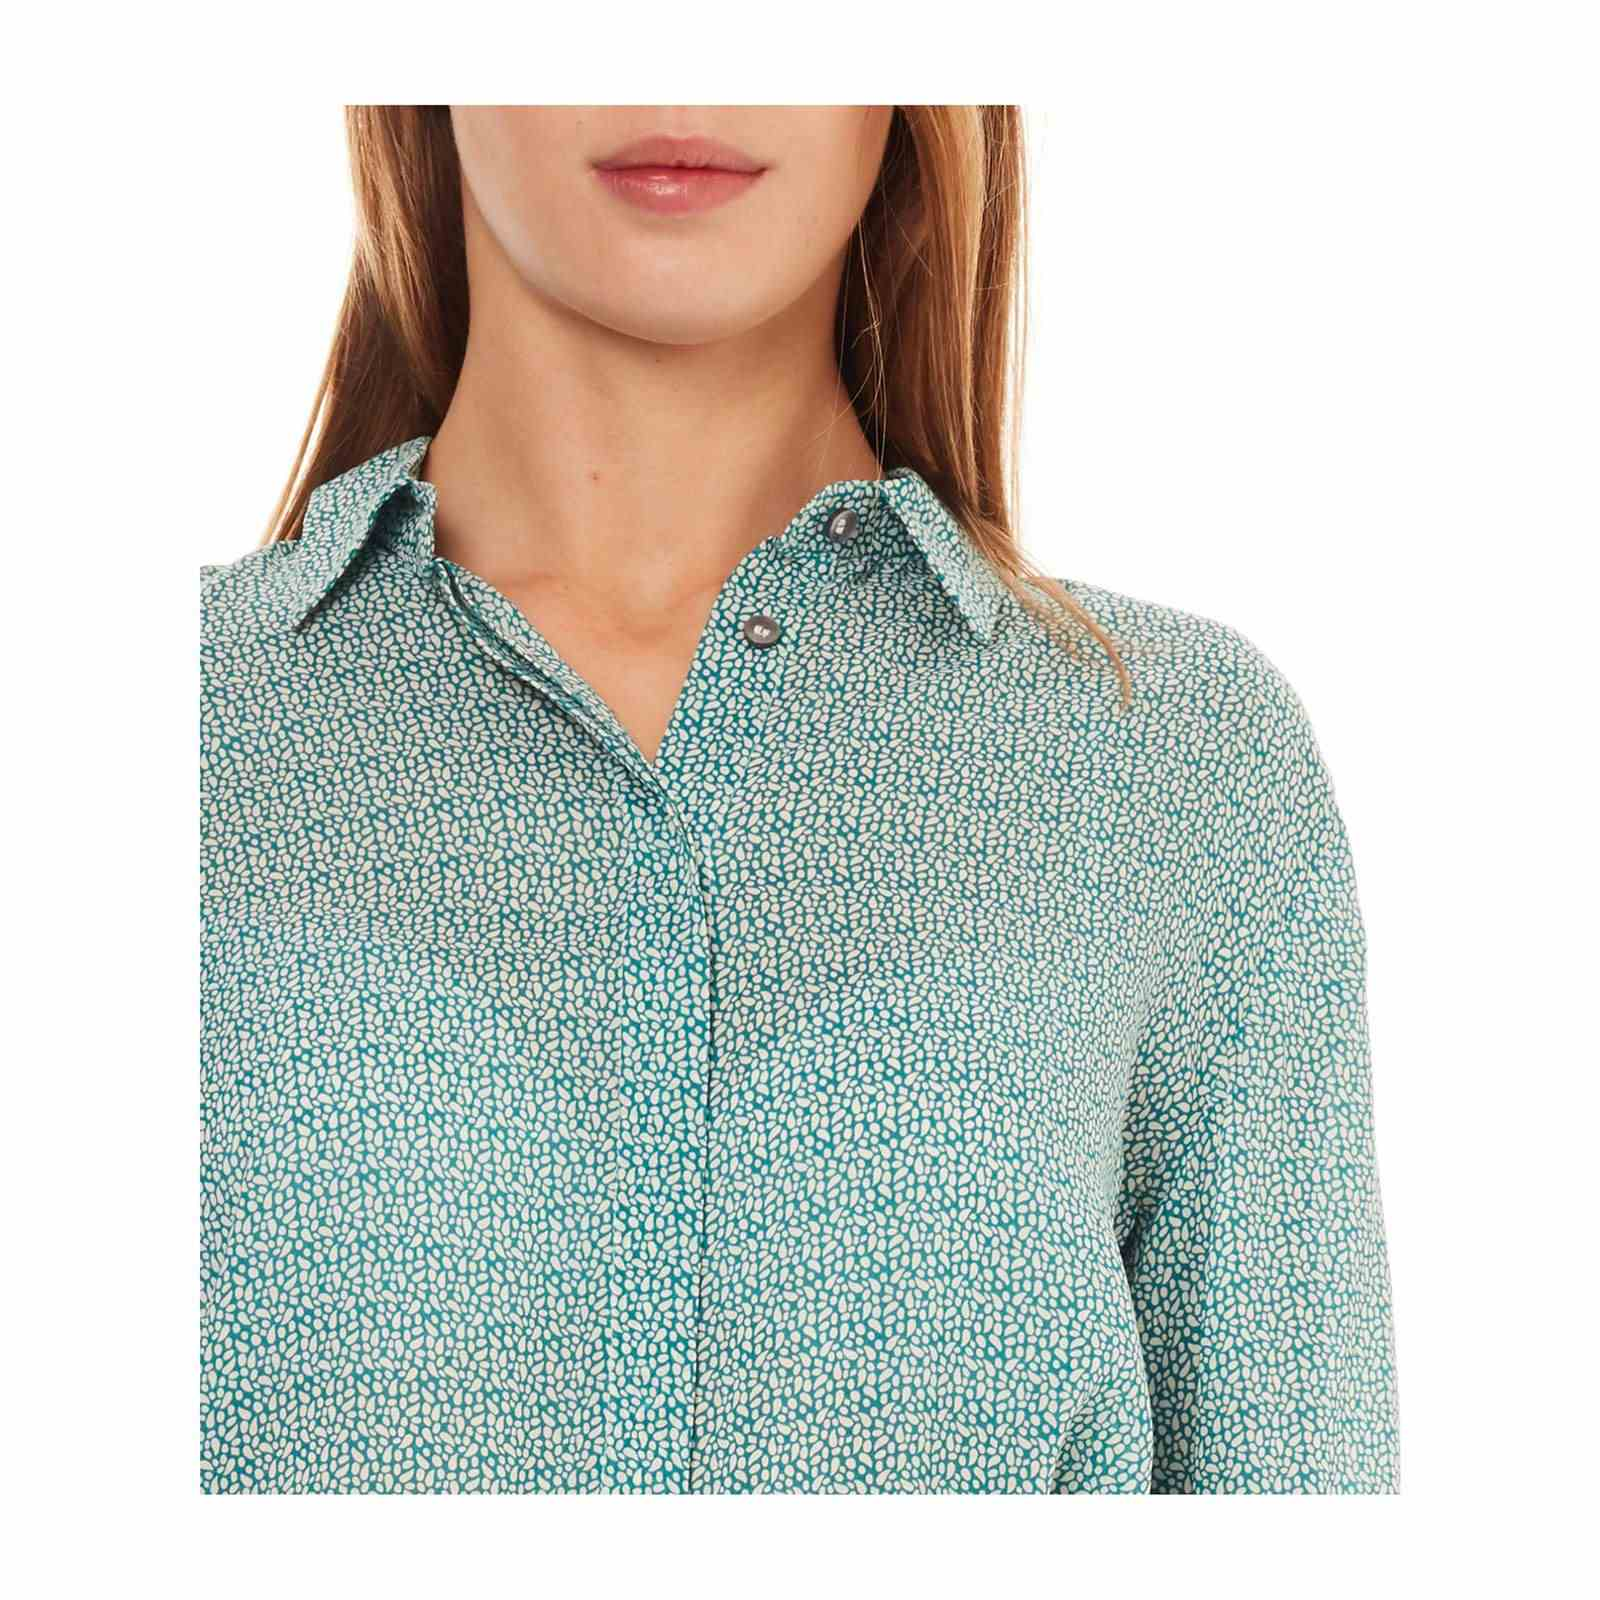 LonguesTurquoise V Chemise Benetton Manches Femme n0O8kXwP